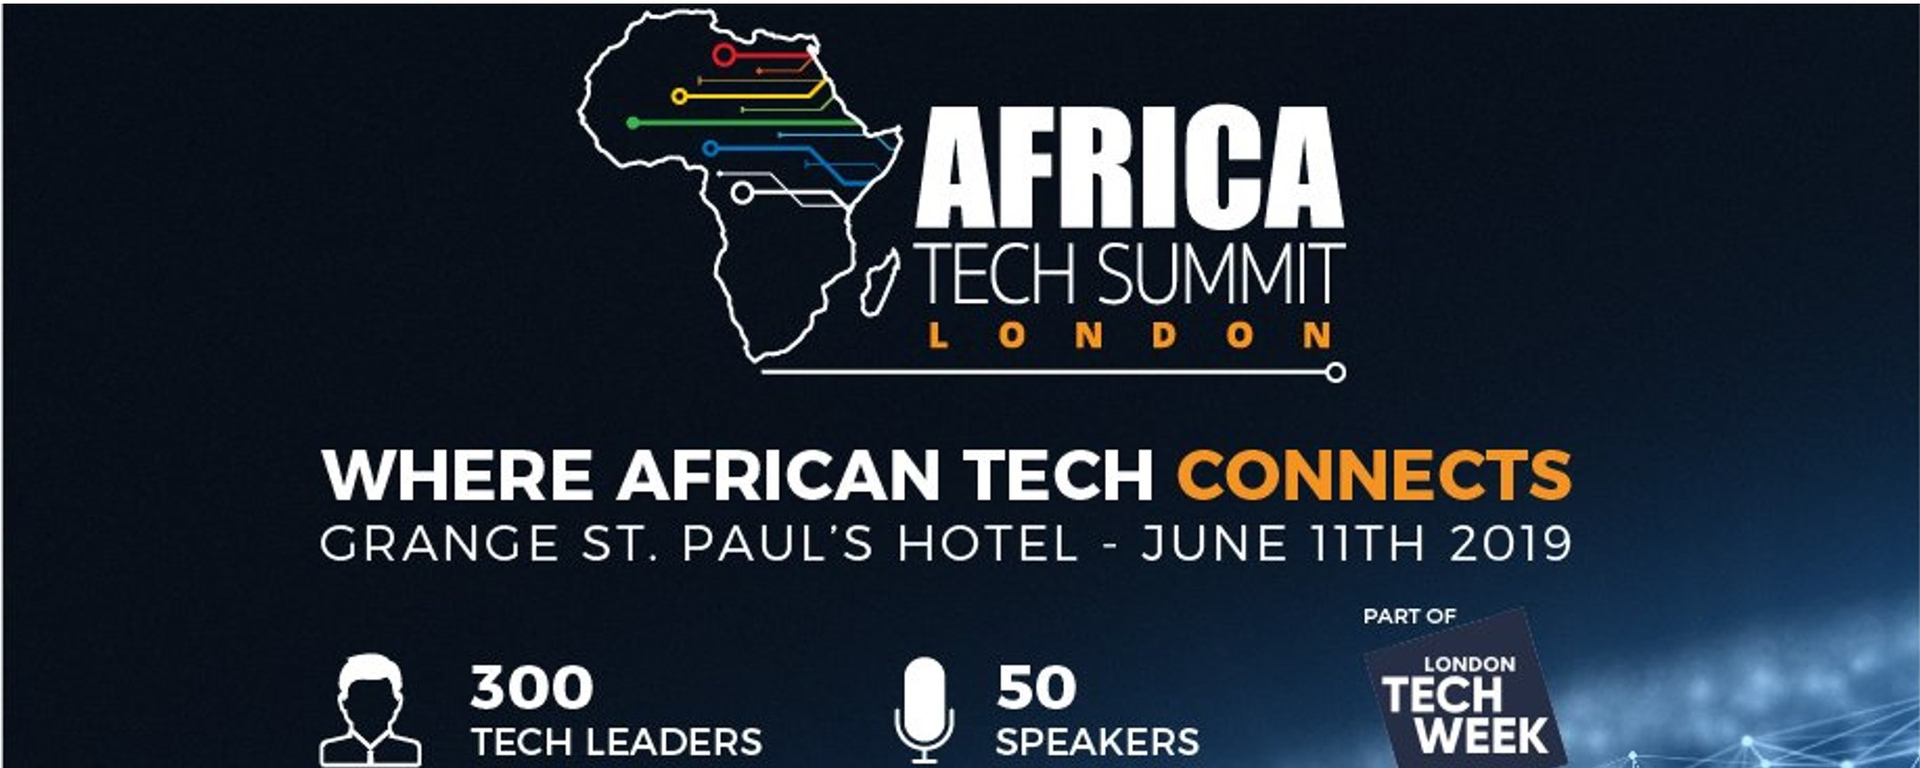 Africa Technology Summit - Africa Tech Summit London 2019 Movemeback African event cover image